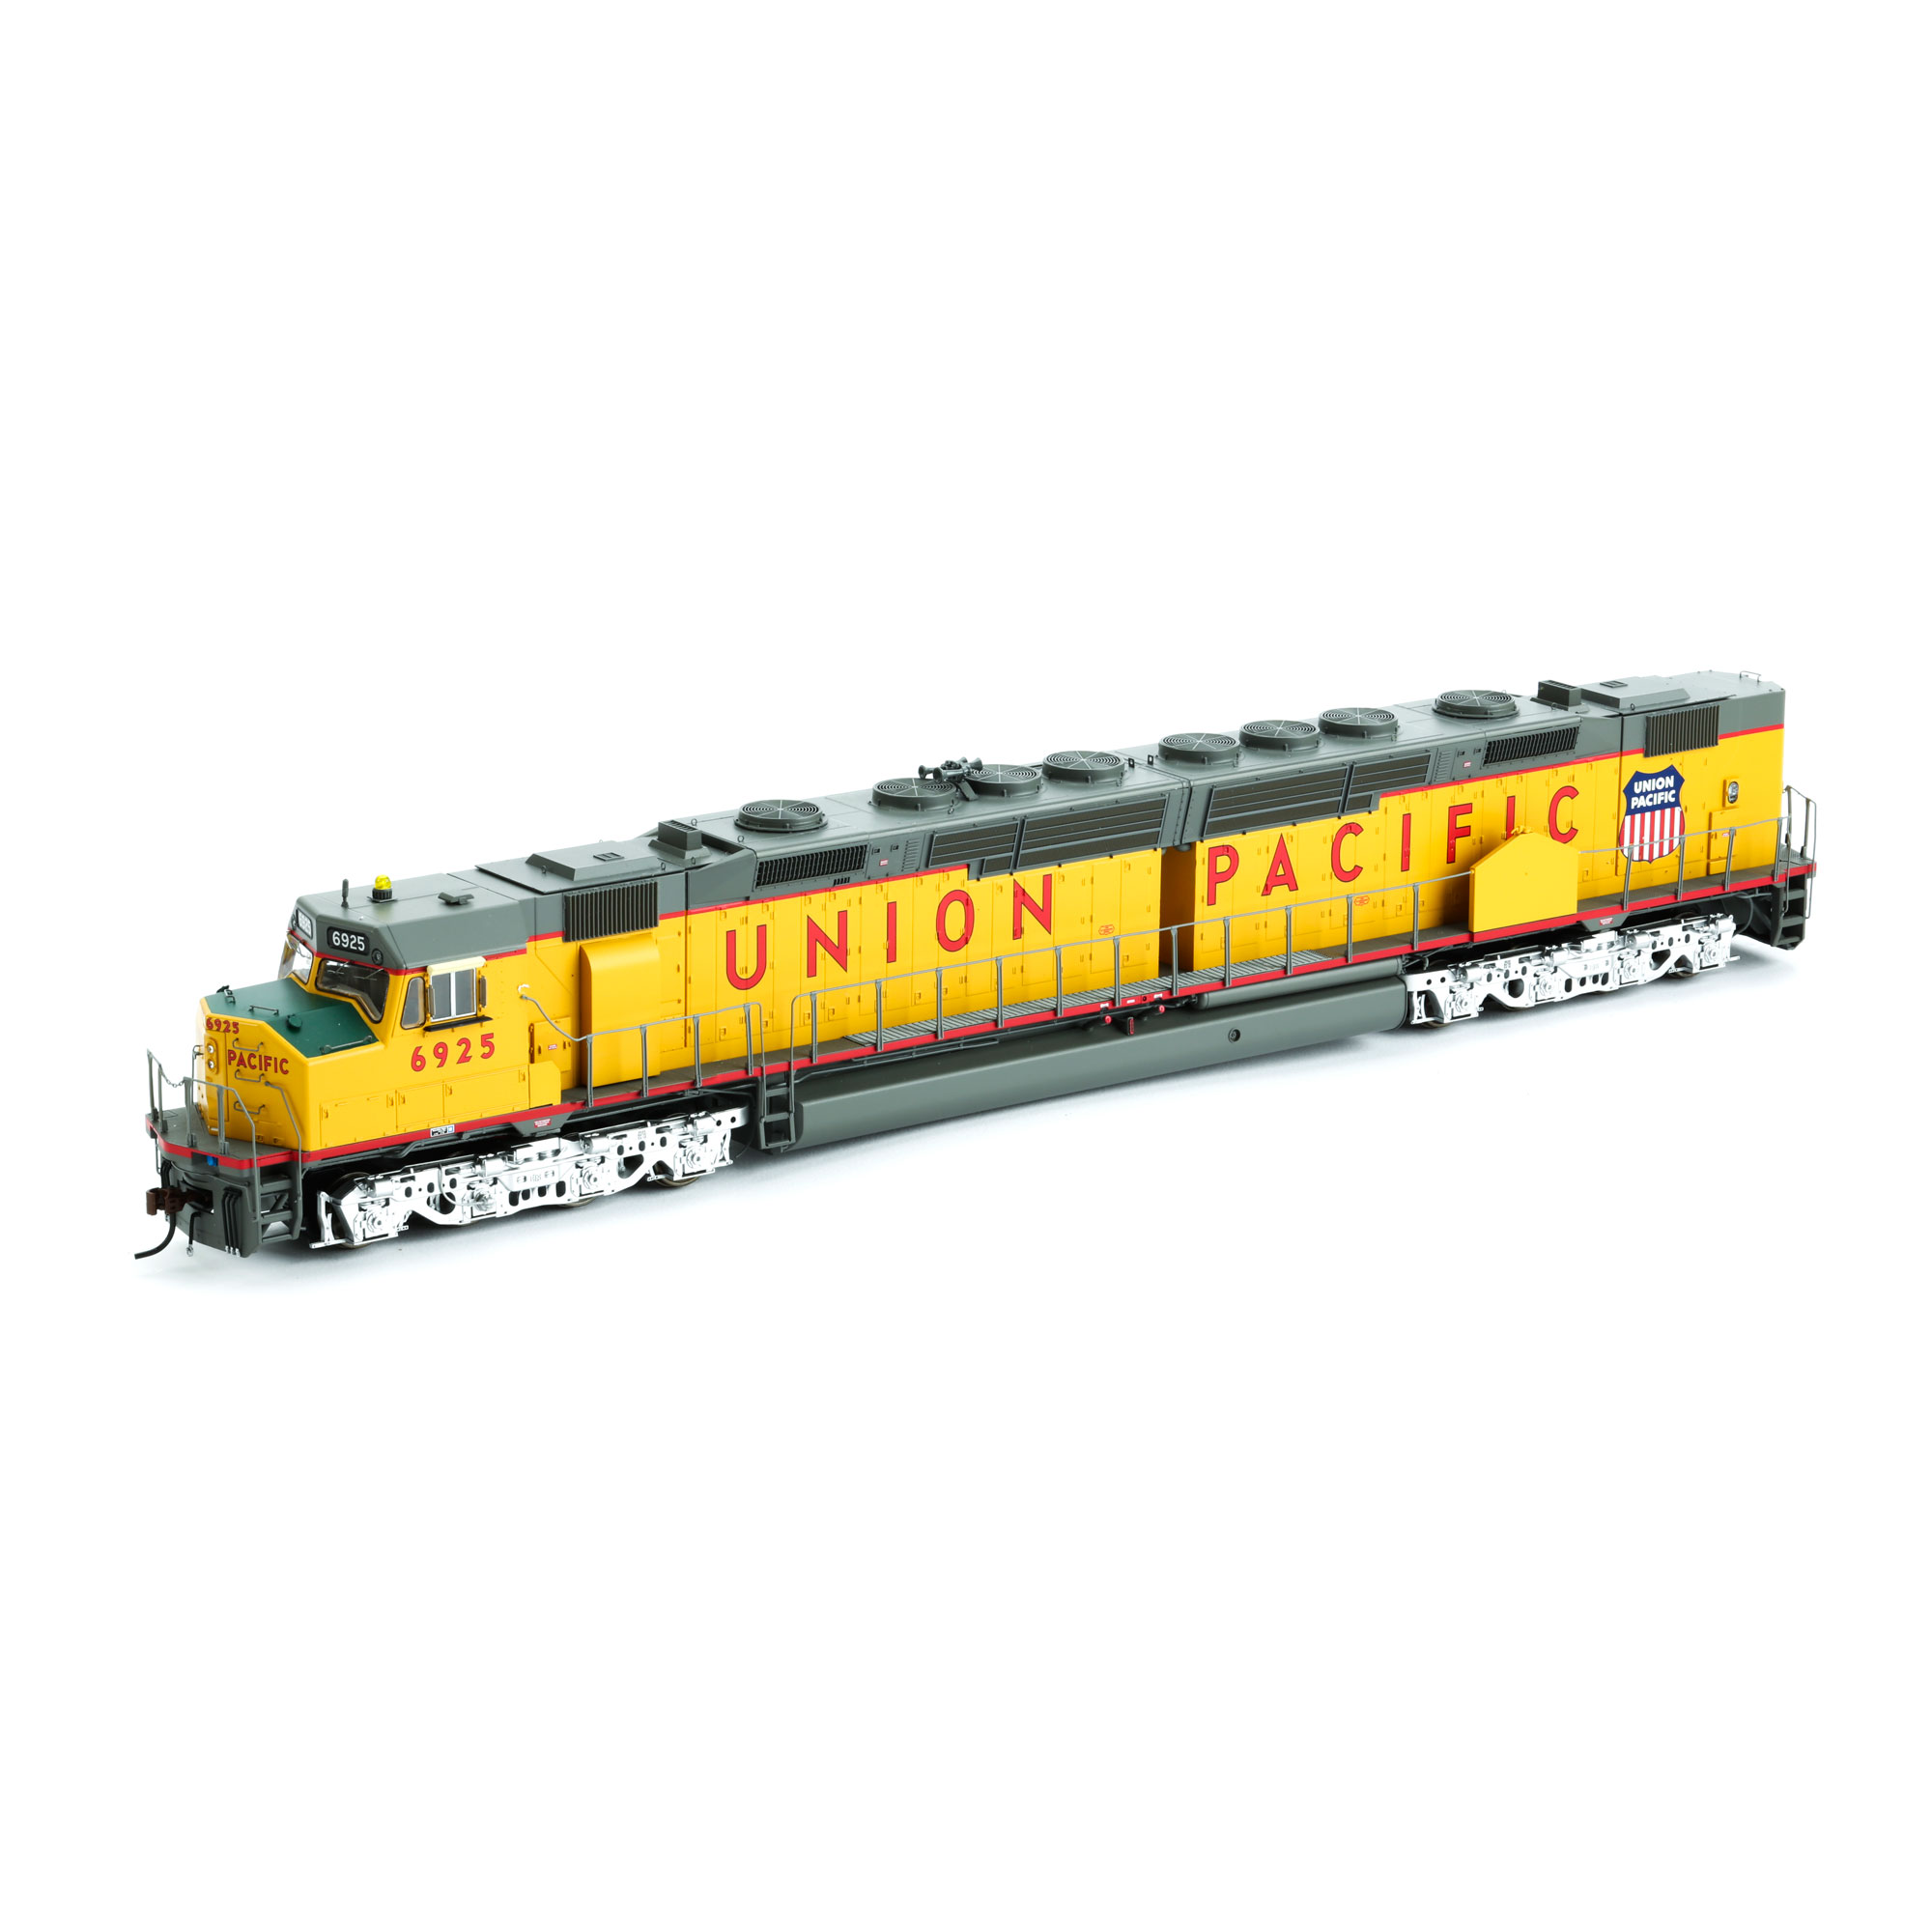 Ho Dda40x W Dcc Sound Up Up Shield 6925 Athg69553 Athearn Trains